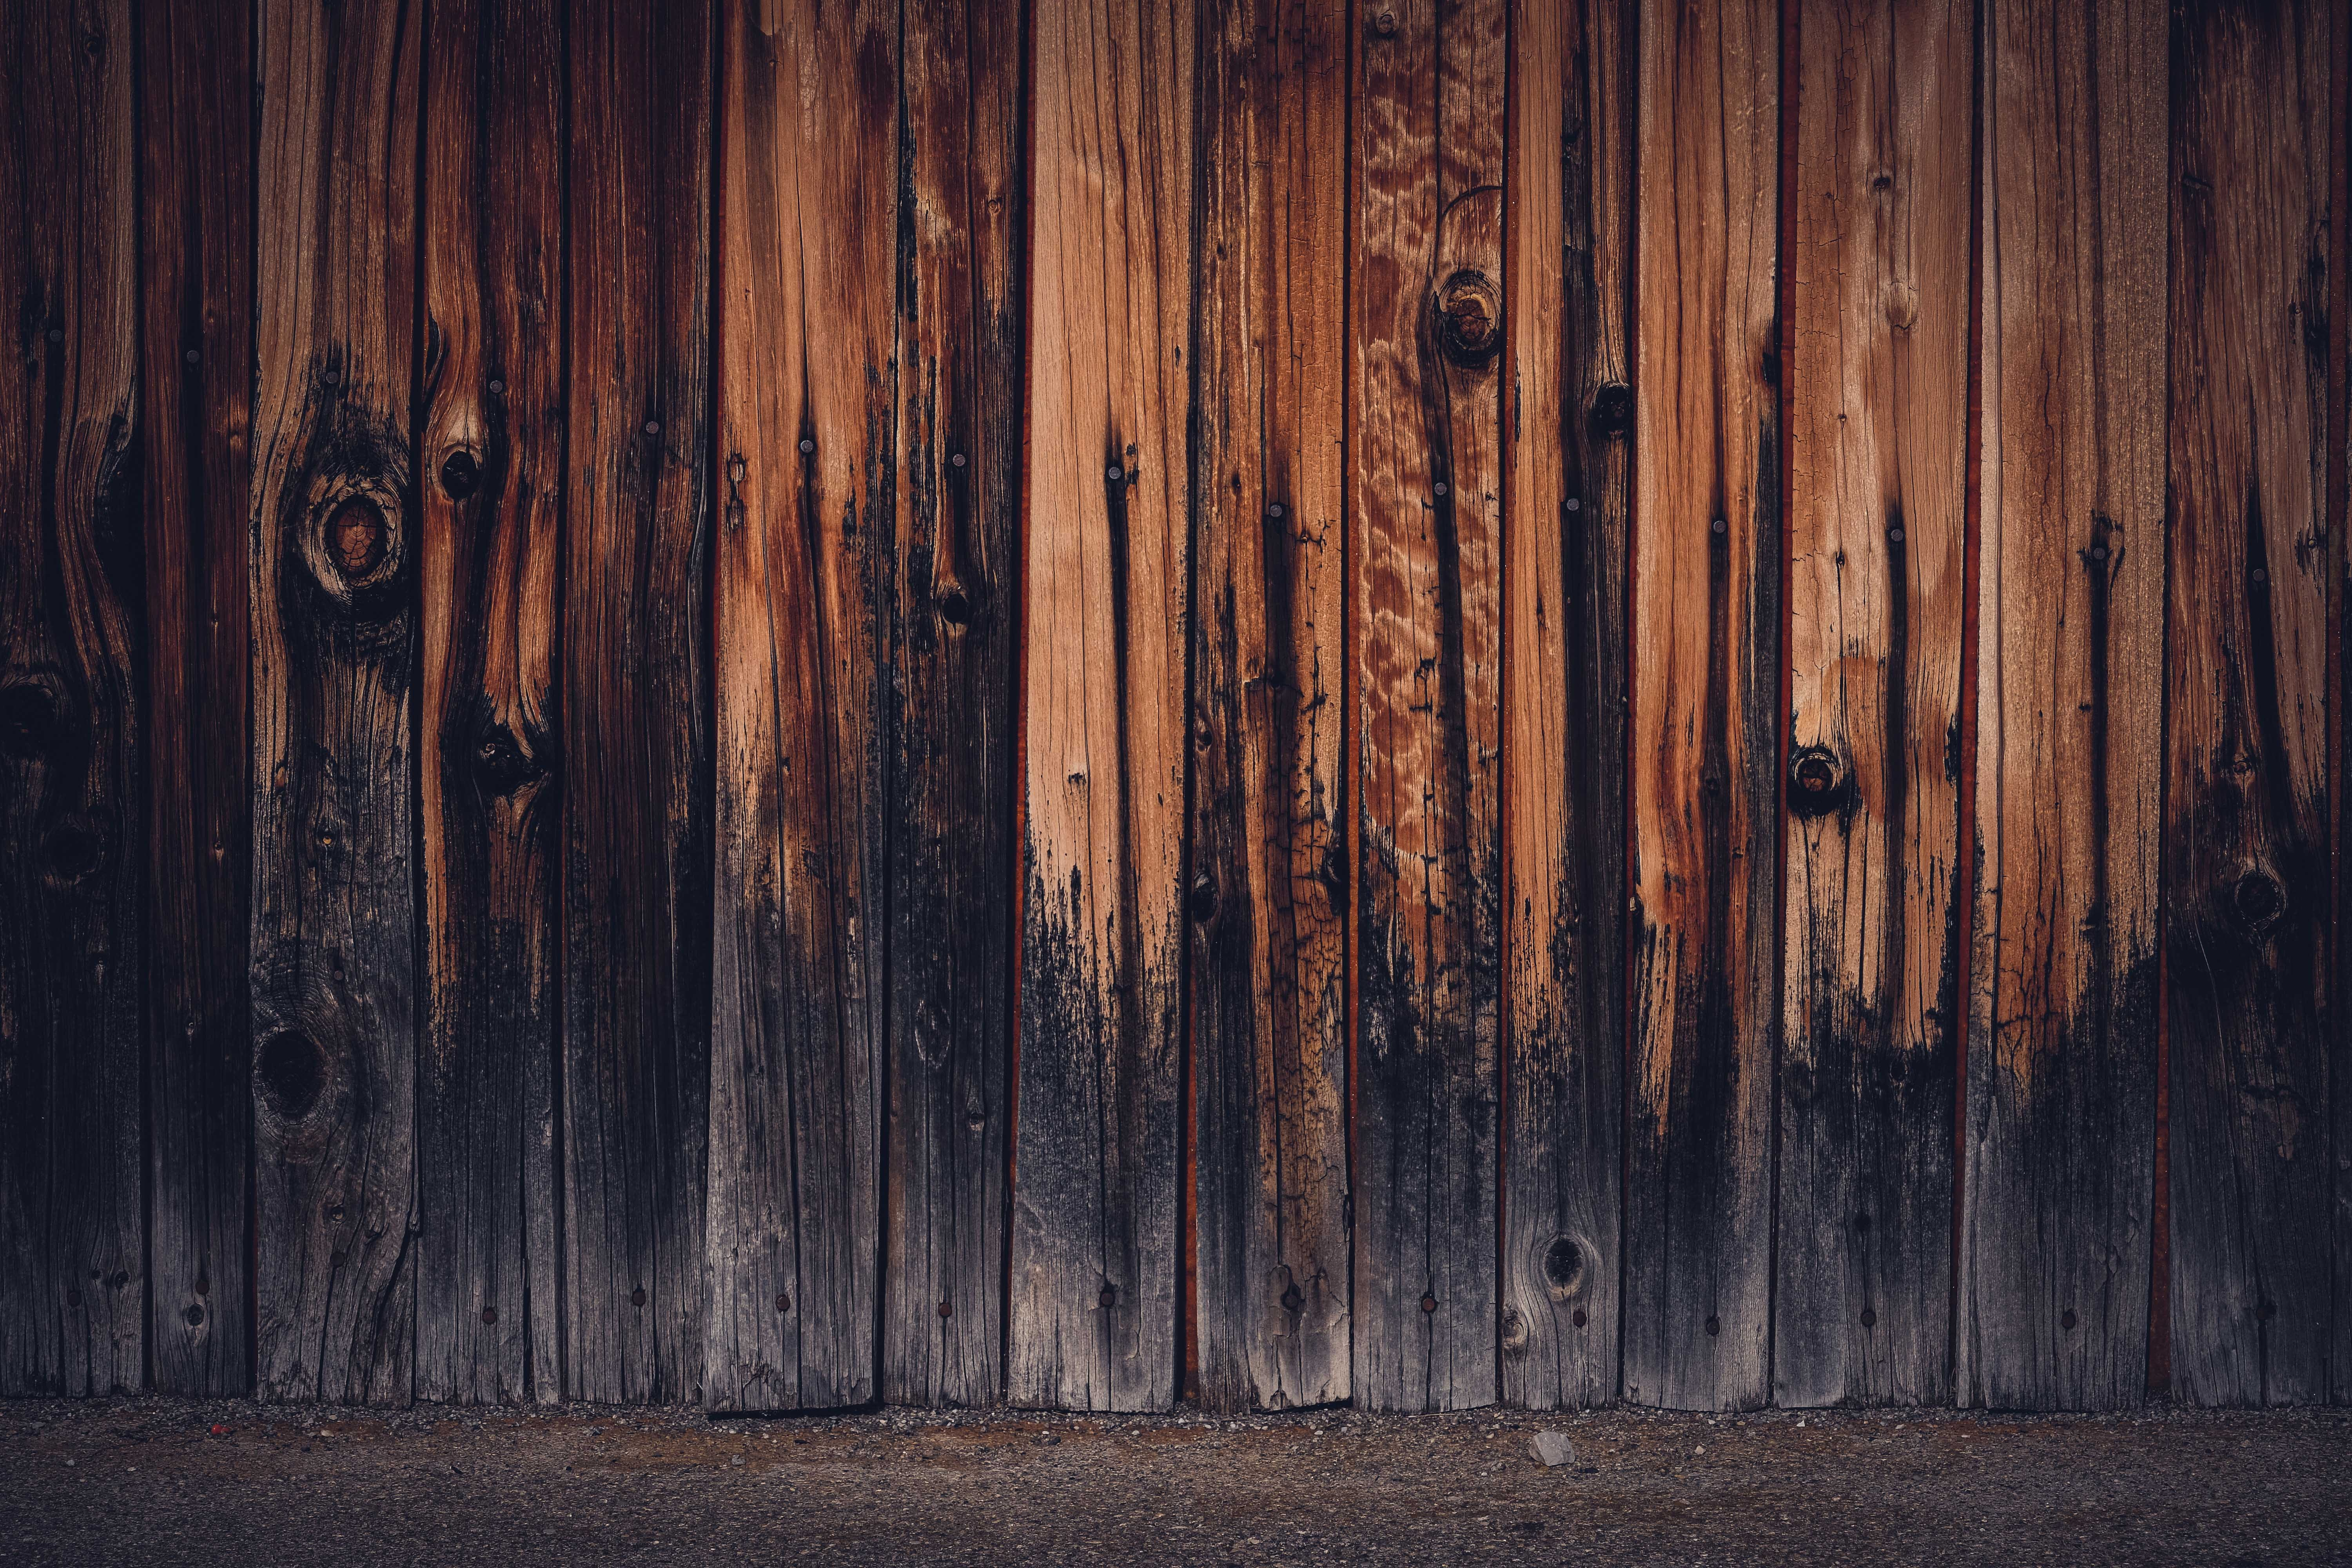 152604 download wallpaper Textures, Texture, Planks, Board, Wood, Tree, Fence screensavers and pictures for free